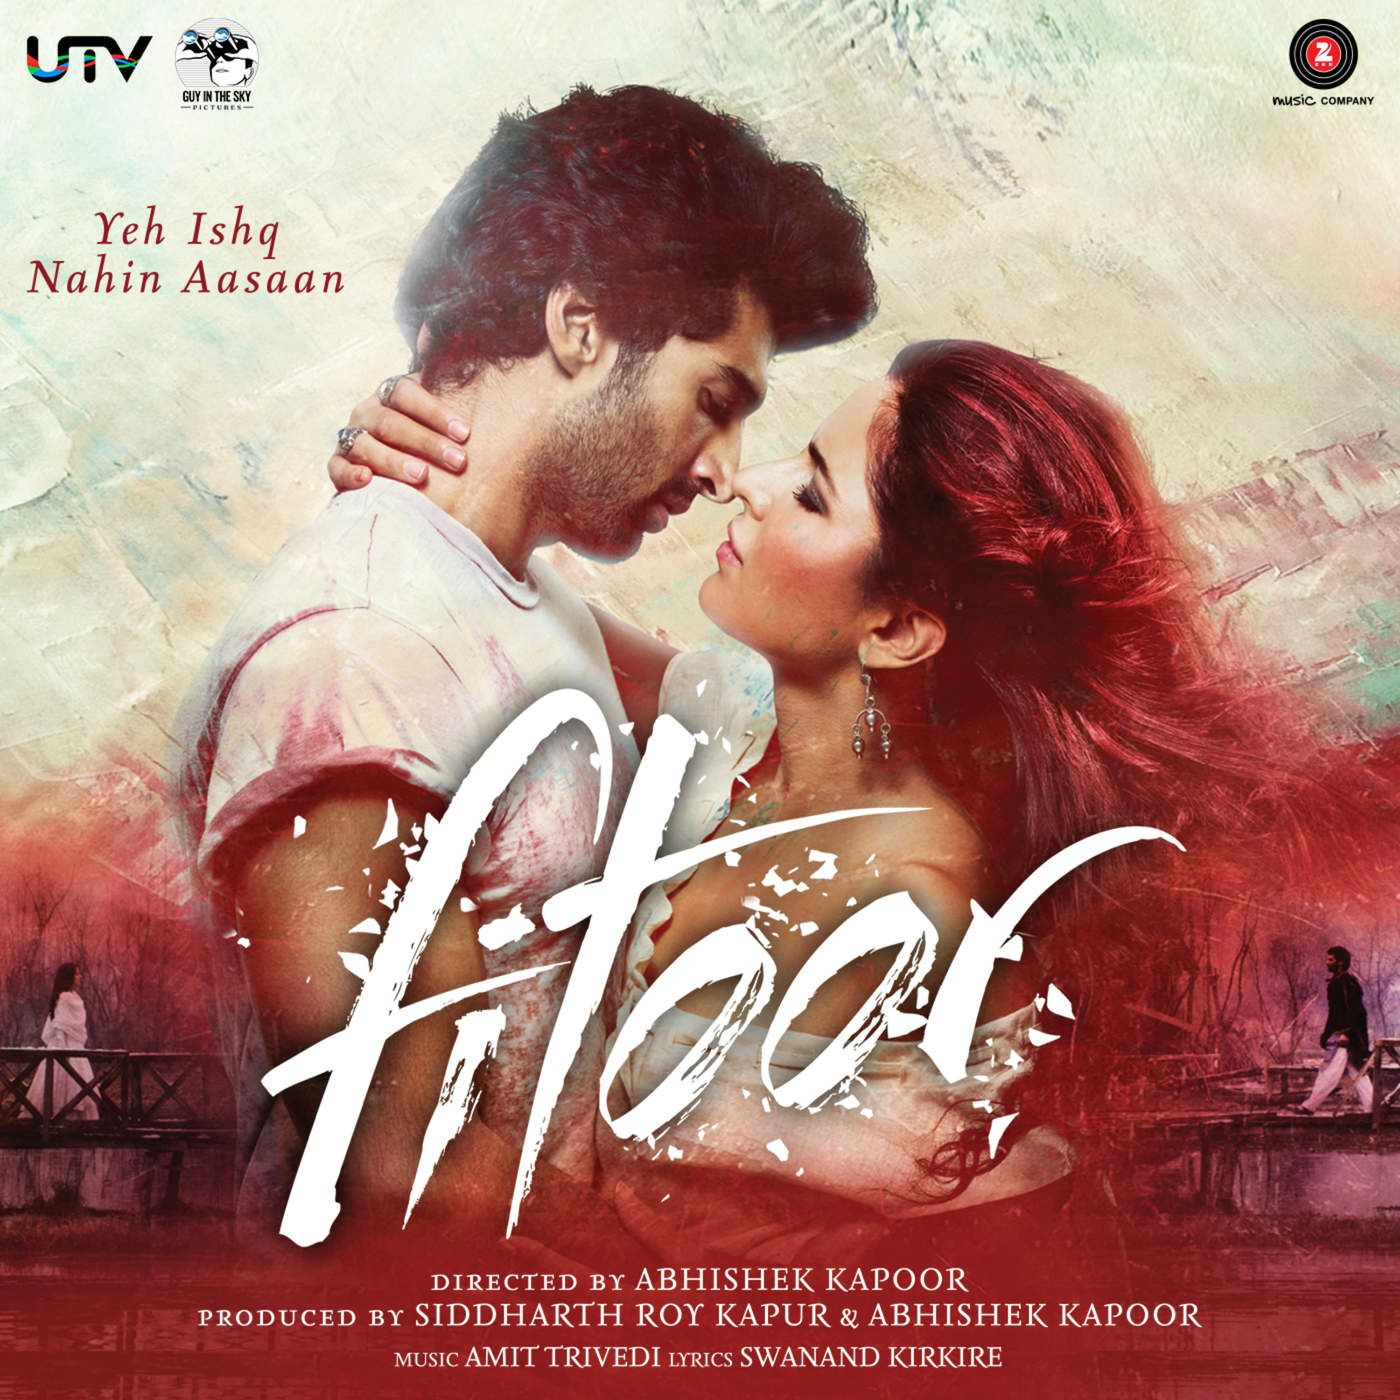 Download Latest Bollywood Mp3 Songs And Music Fitoor Movie Mp3 Songs Download Bollywood Music Bollywood Songs Mp3 Song Download